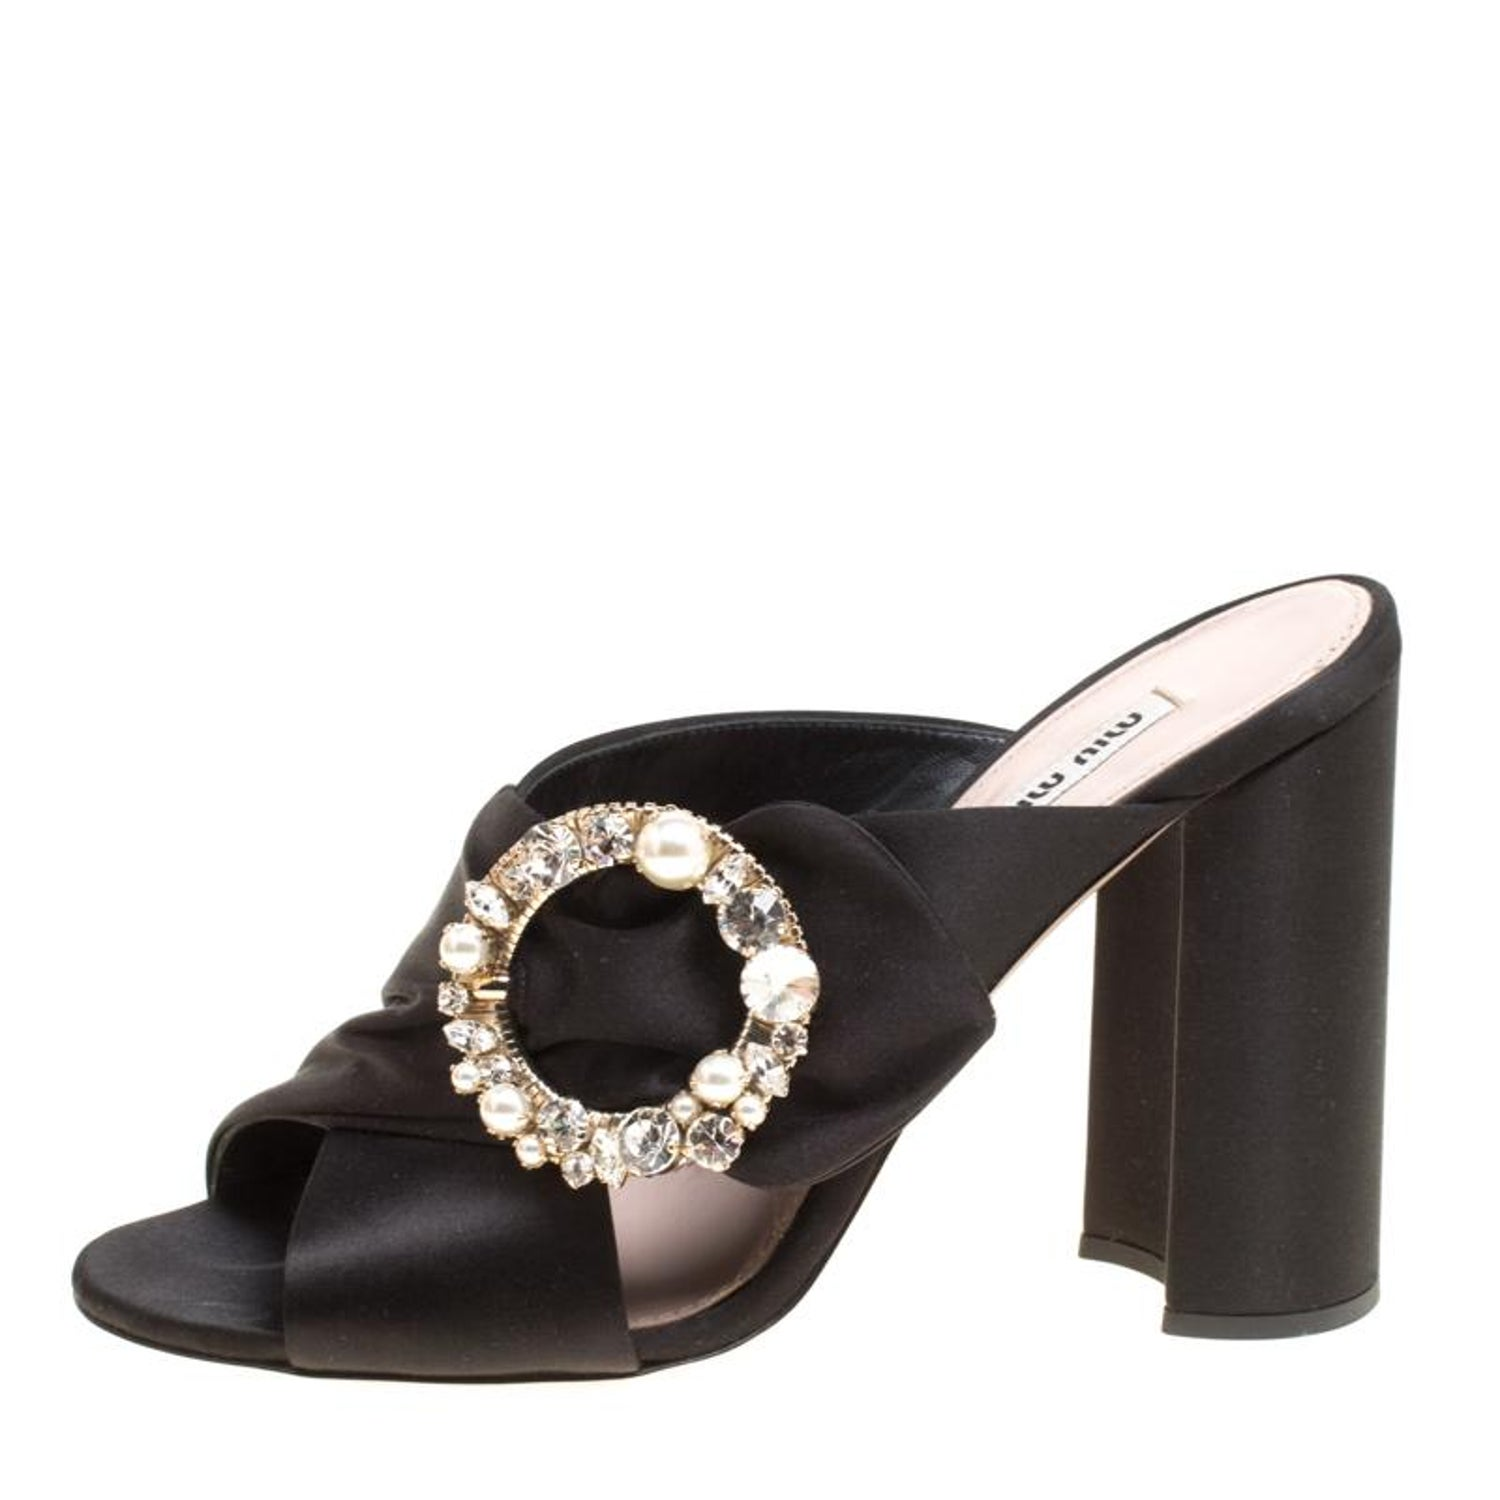 667e7eb918 Miu Miu Black Satin Crystal and Faux Pearl Embellished Brooch Peep Toe  Mules Siz For Sale at 1stdibs